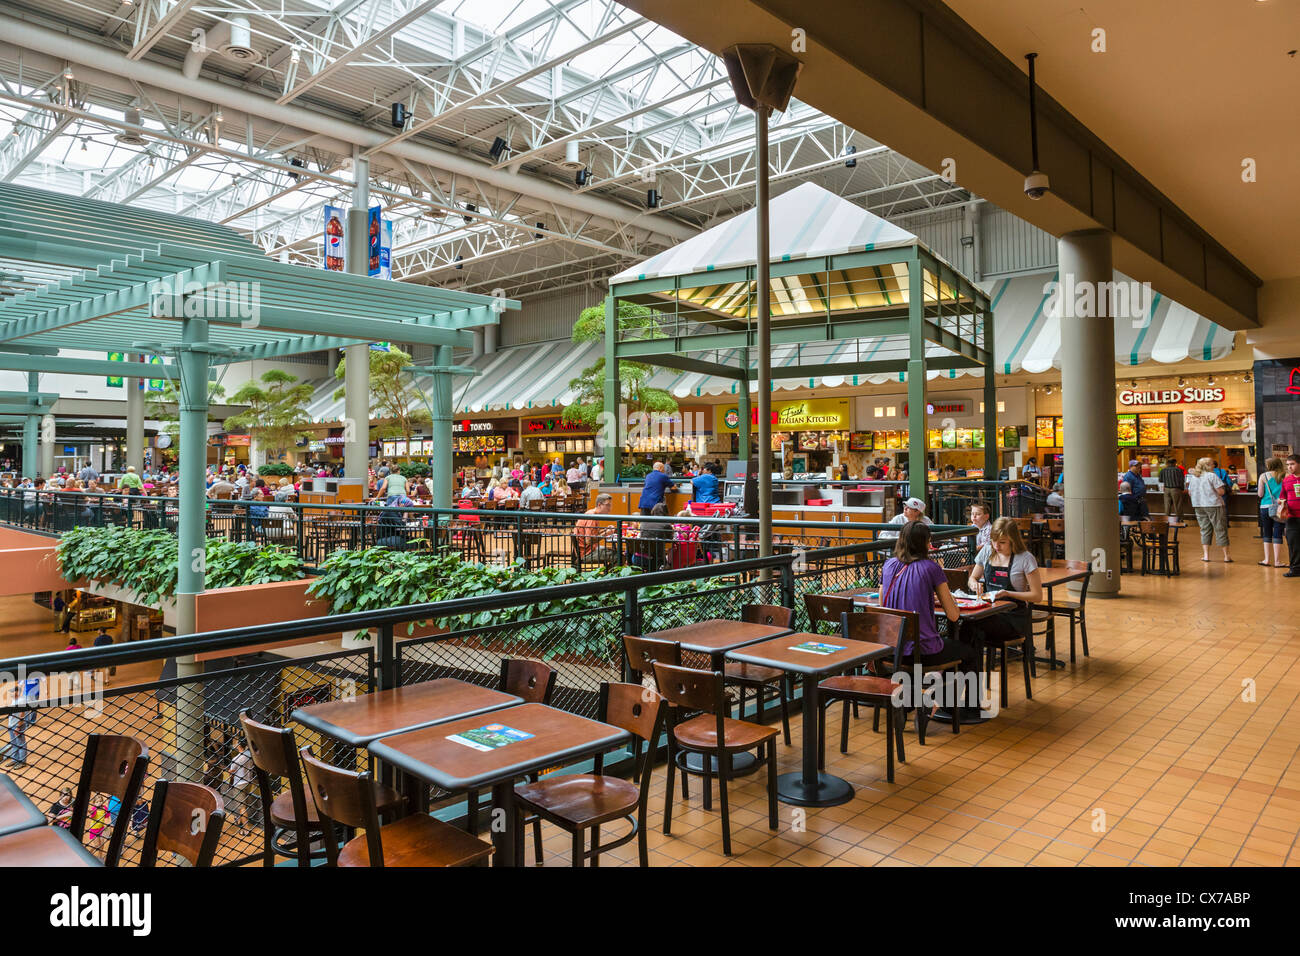 Food Court in the Mall of America, Bloomington, Minneapolis, Minnesota, USA - Stock Image